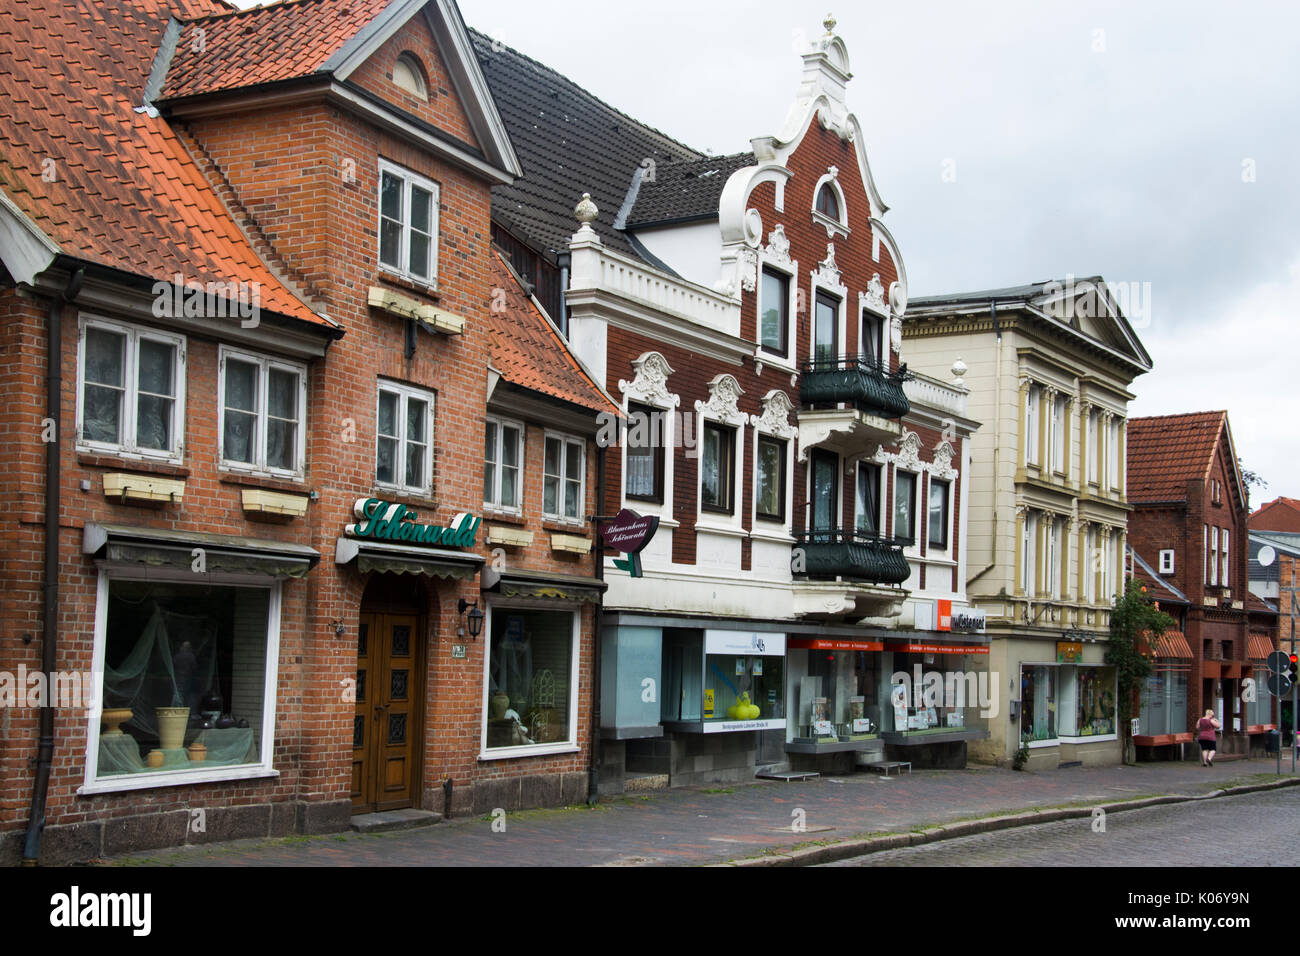 19th century. streetscape on Lubeckerstrasse in Eutin, Schleswig-Holstein - Stock Image